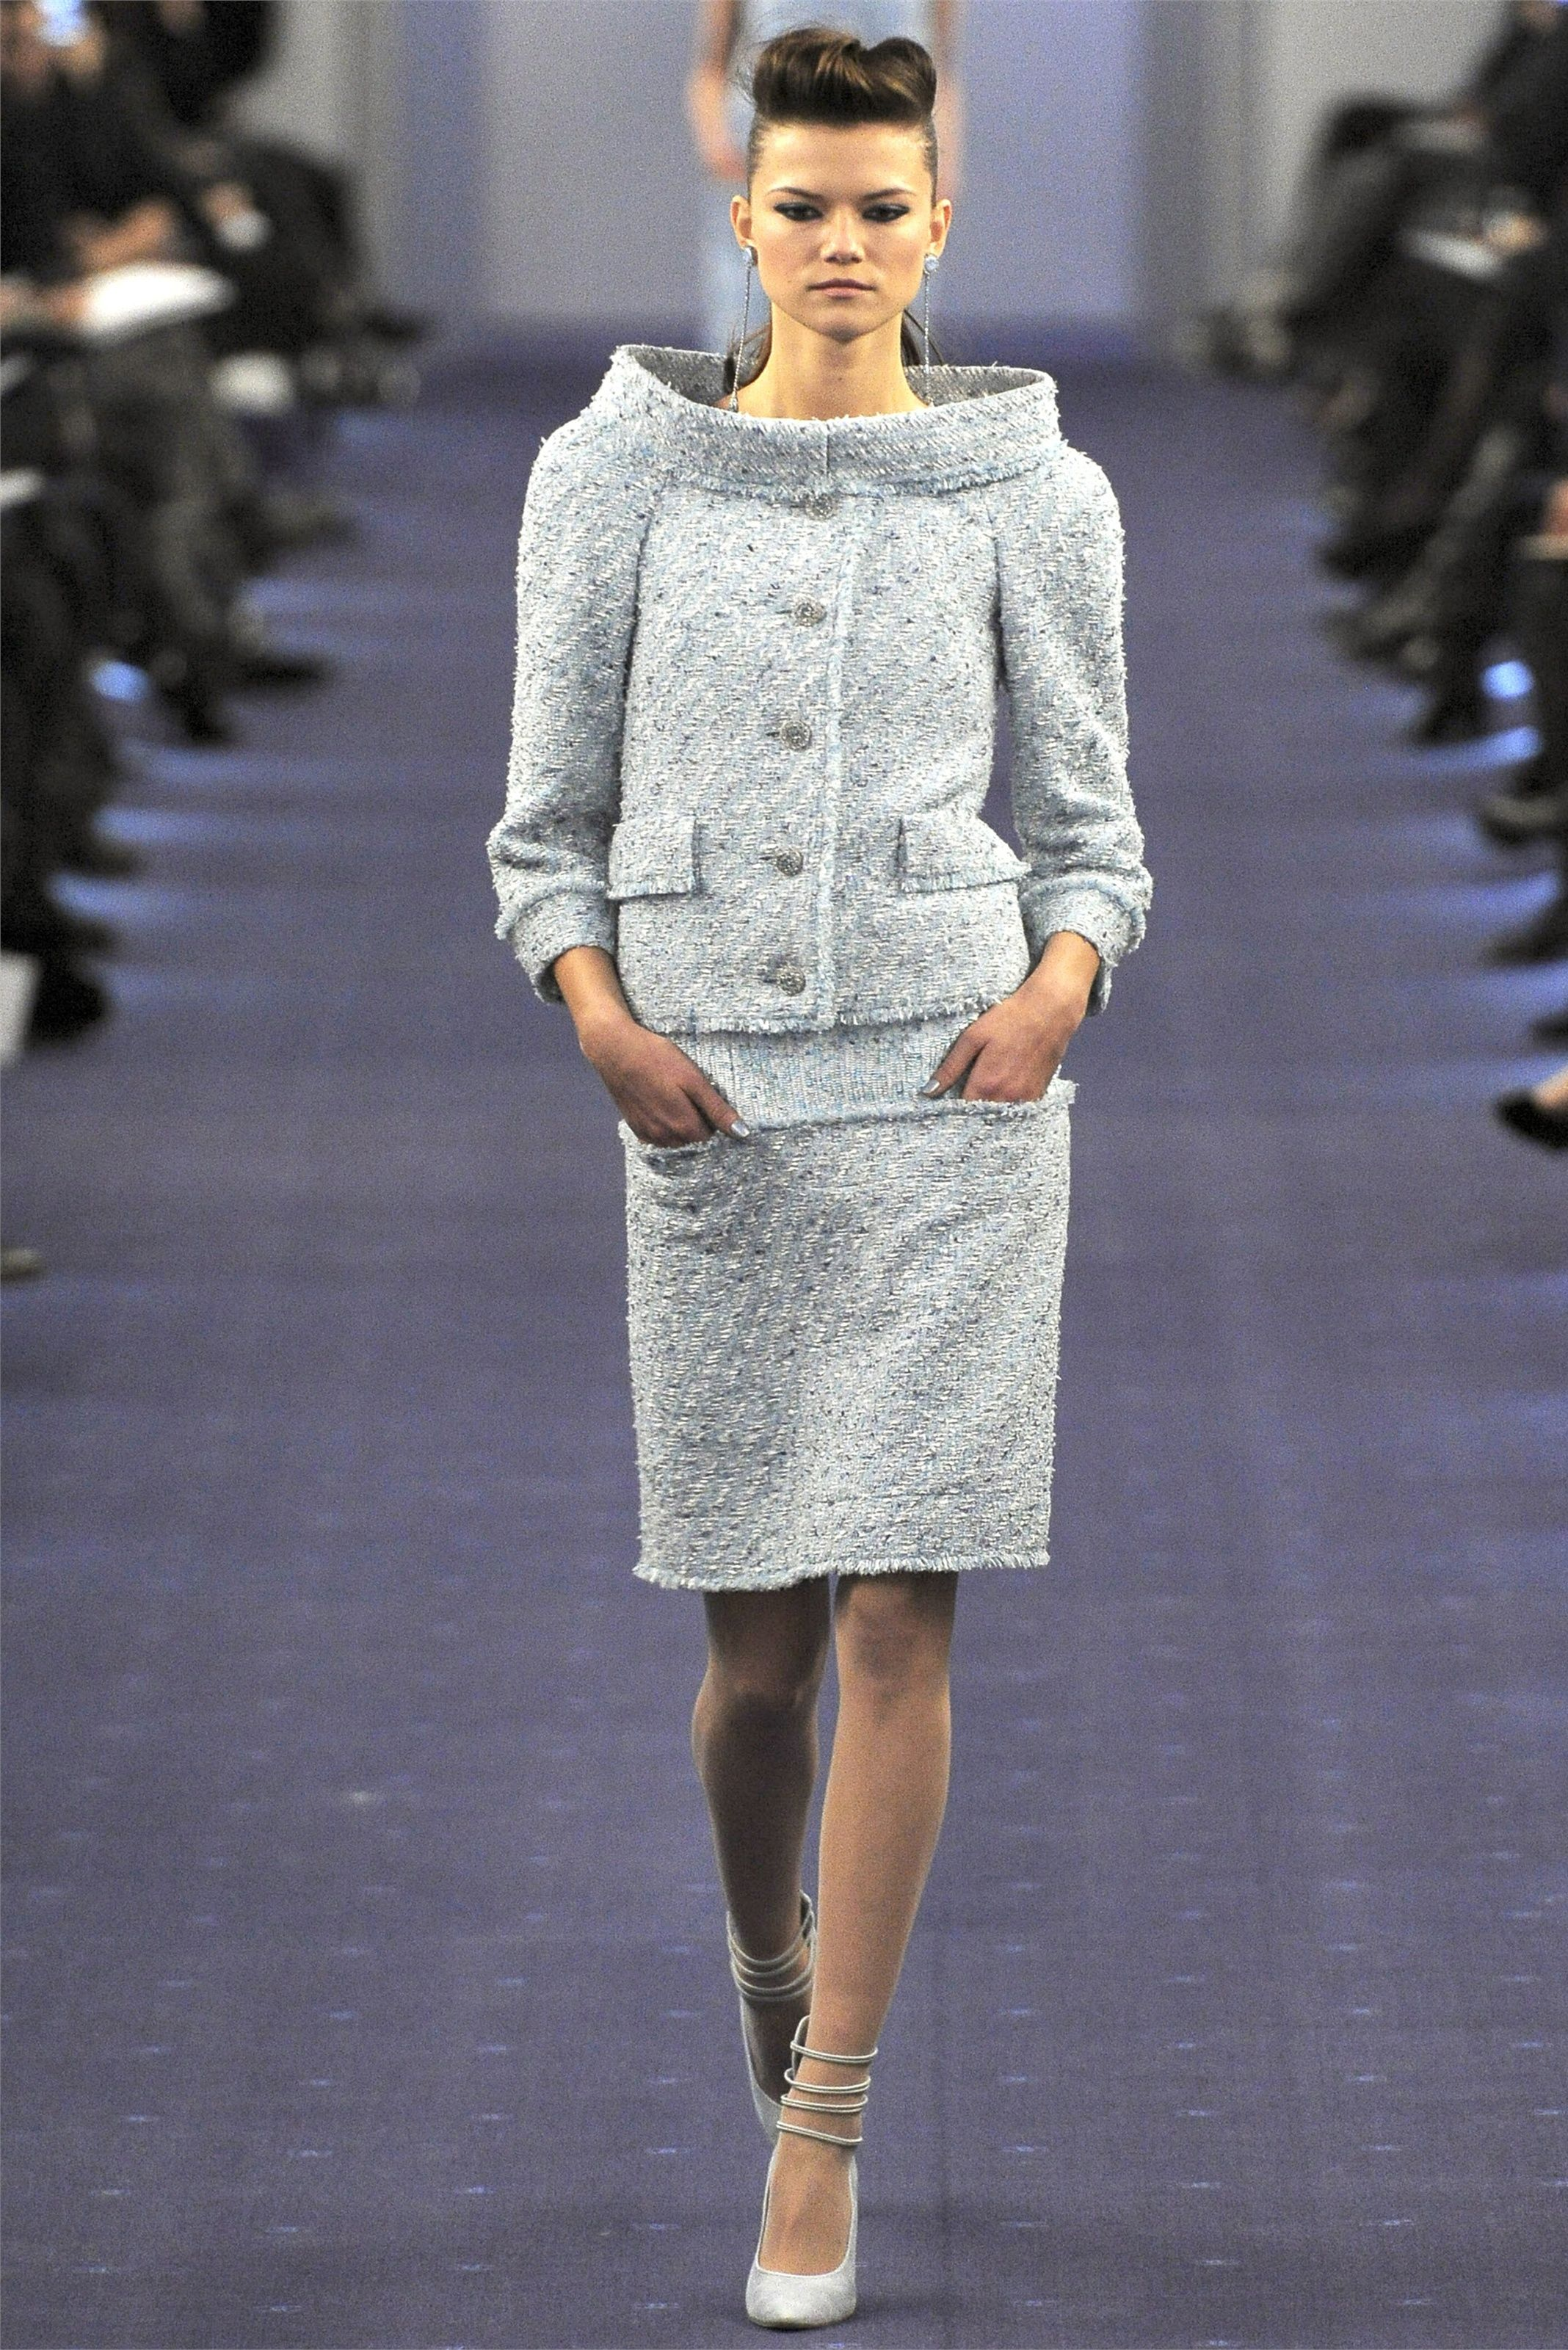 Chanel Haute Couture Spring Summer 2012